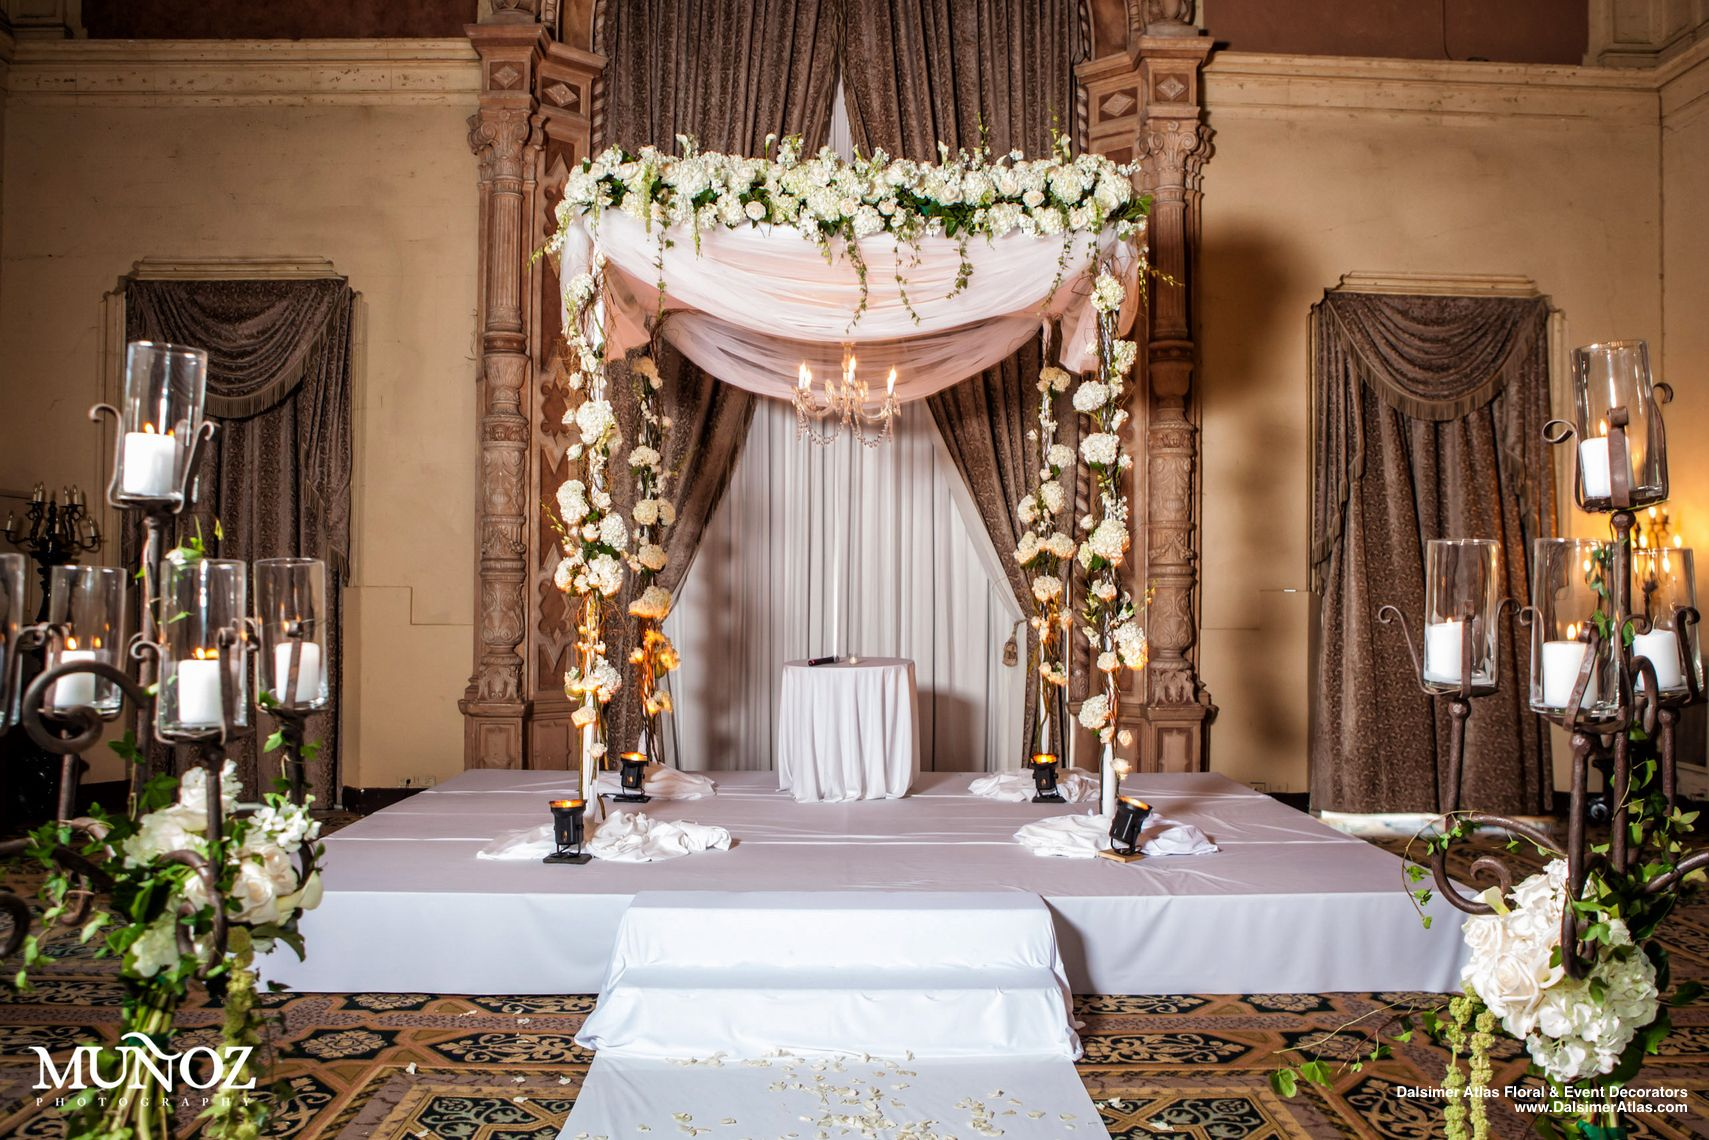 wedding-florist-flowers-decorations-biltmore-coral-gables-florida-dalsimer-atlas-13